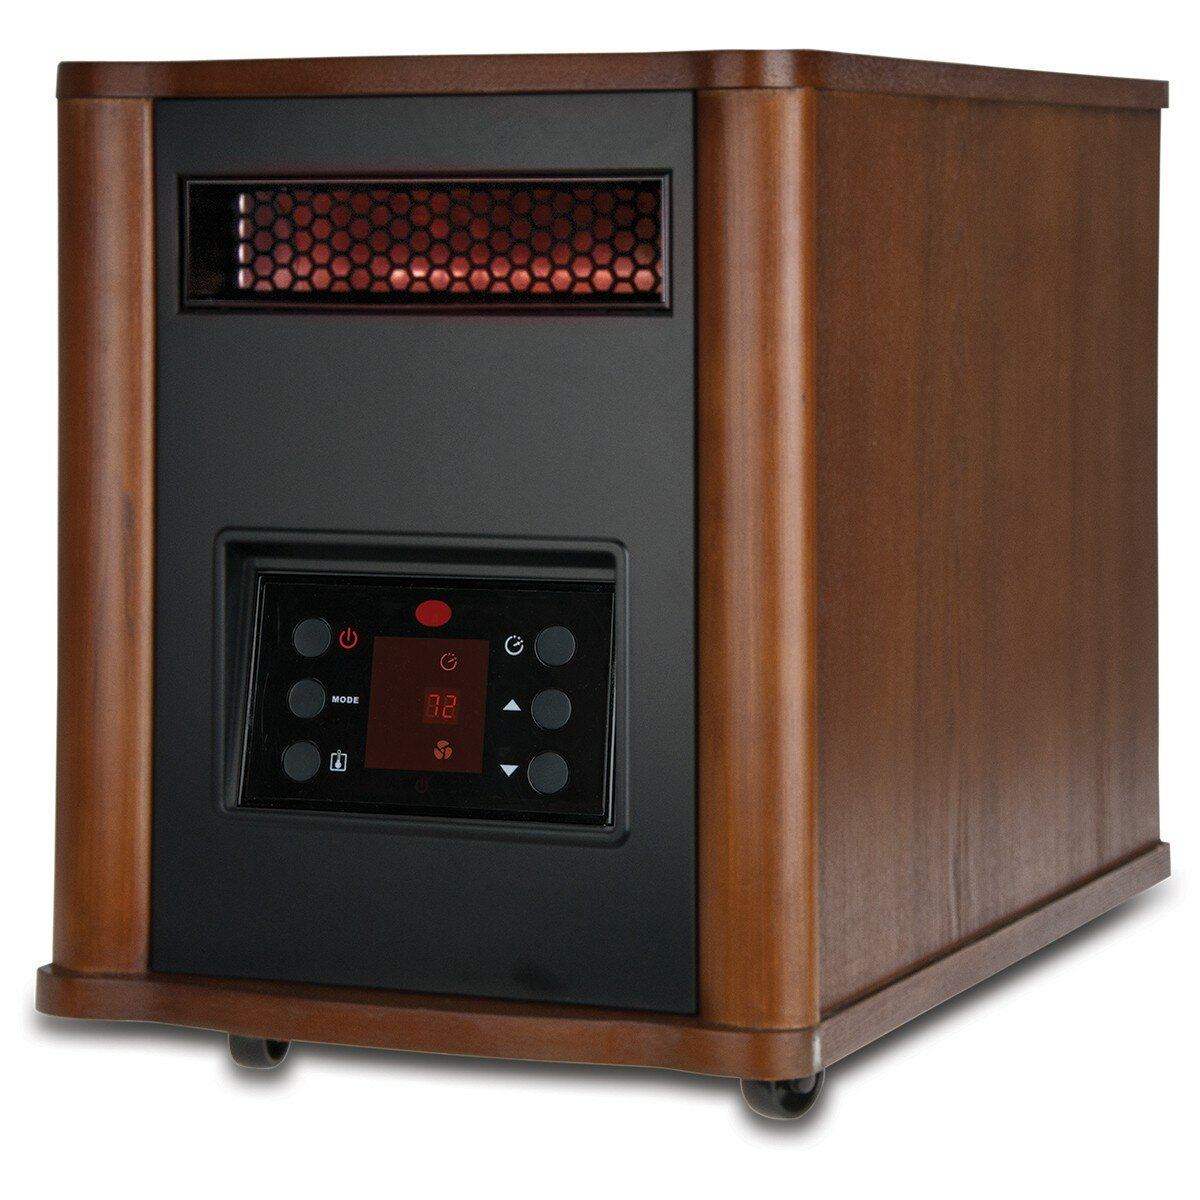 Top Rated Electric Space Heaters Portable Electric Infrared Cabinet Heater with Remote ...